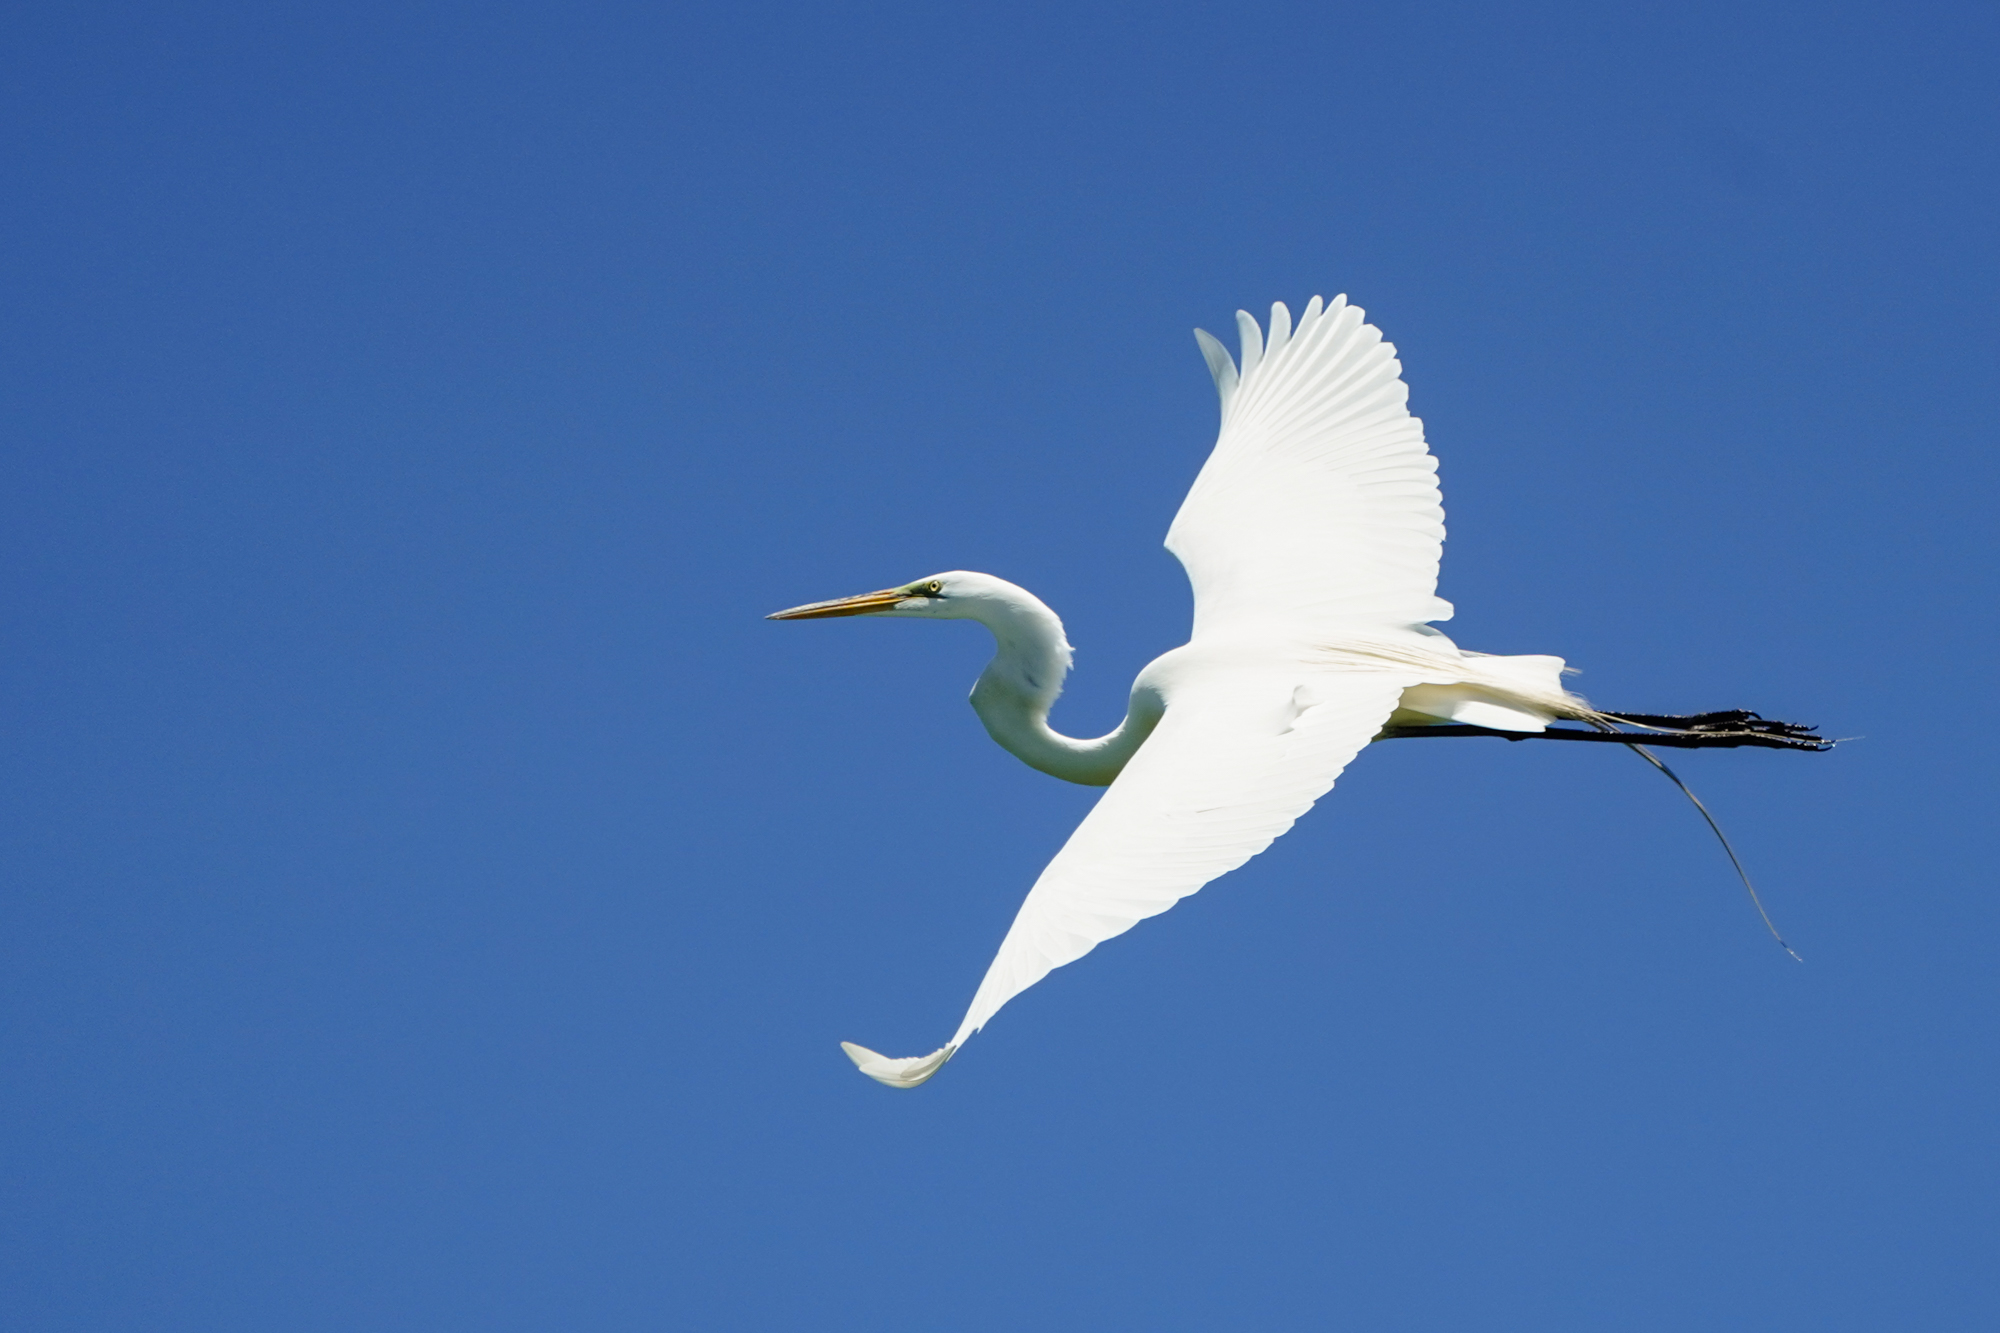 Great Egret in flight. 400mm at f/5.6, 1/2500s, ISO 400